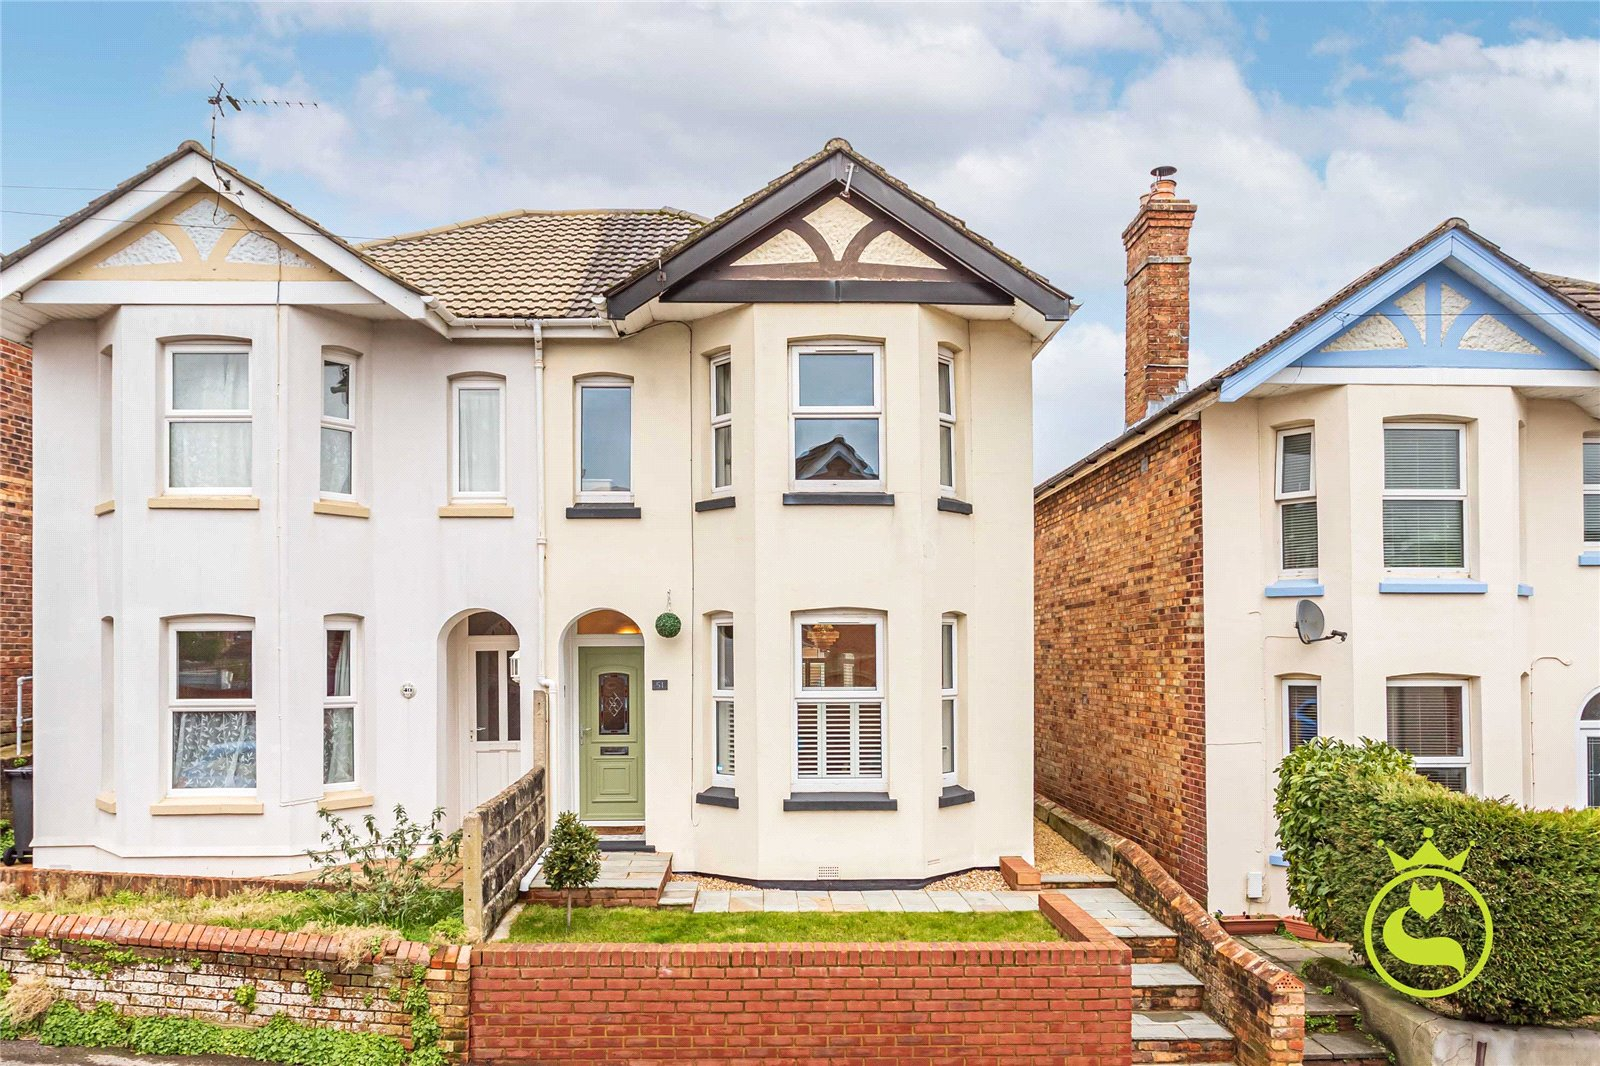 3 bed house for sale in Gwynne Road, Parkstone, BH12